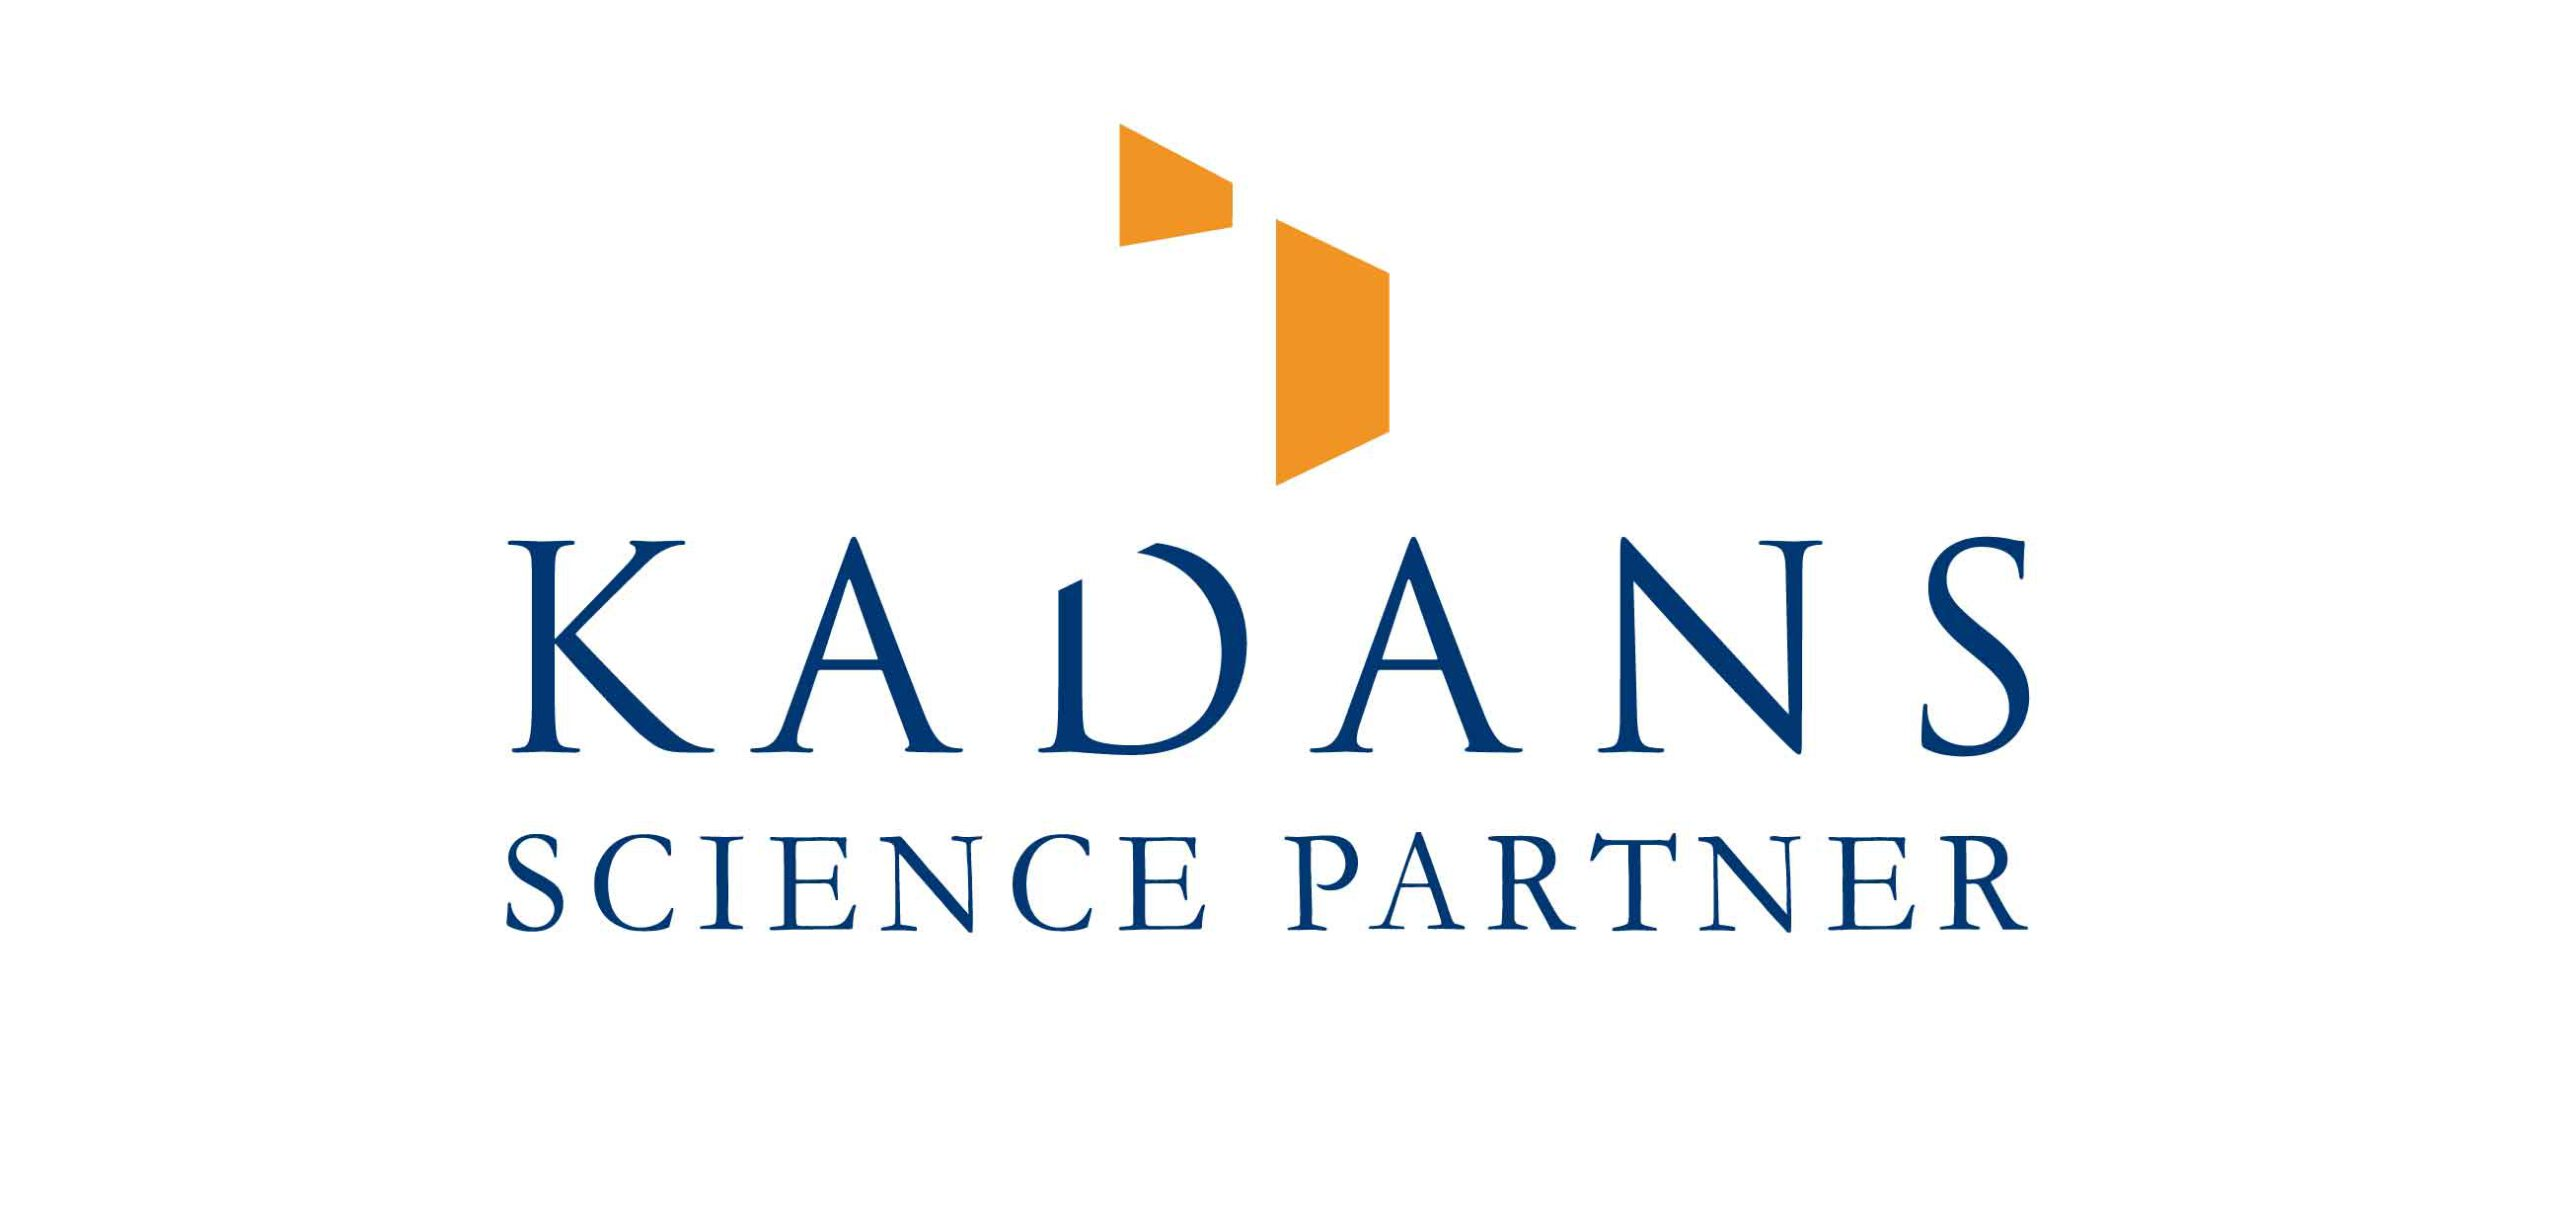 Kadans Science Partner